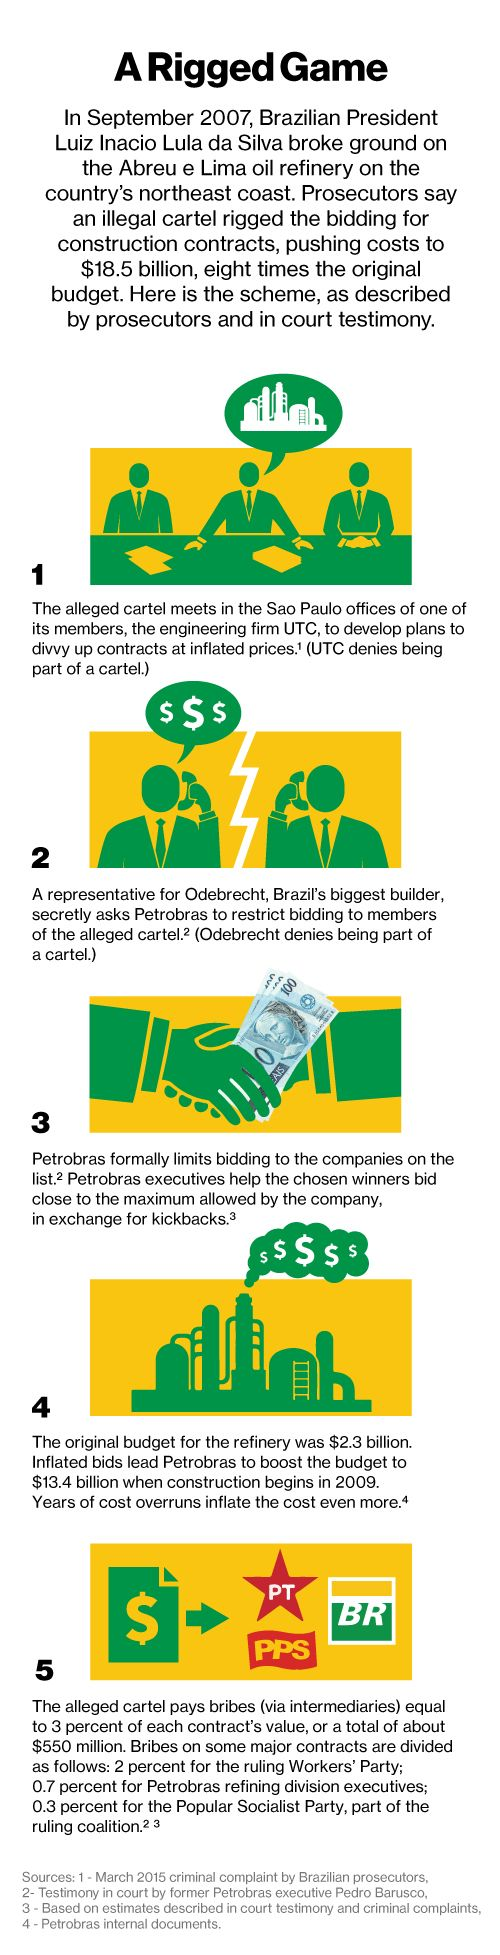 The Brazilian construction cartel - how it worked.